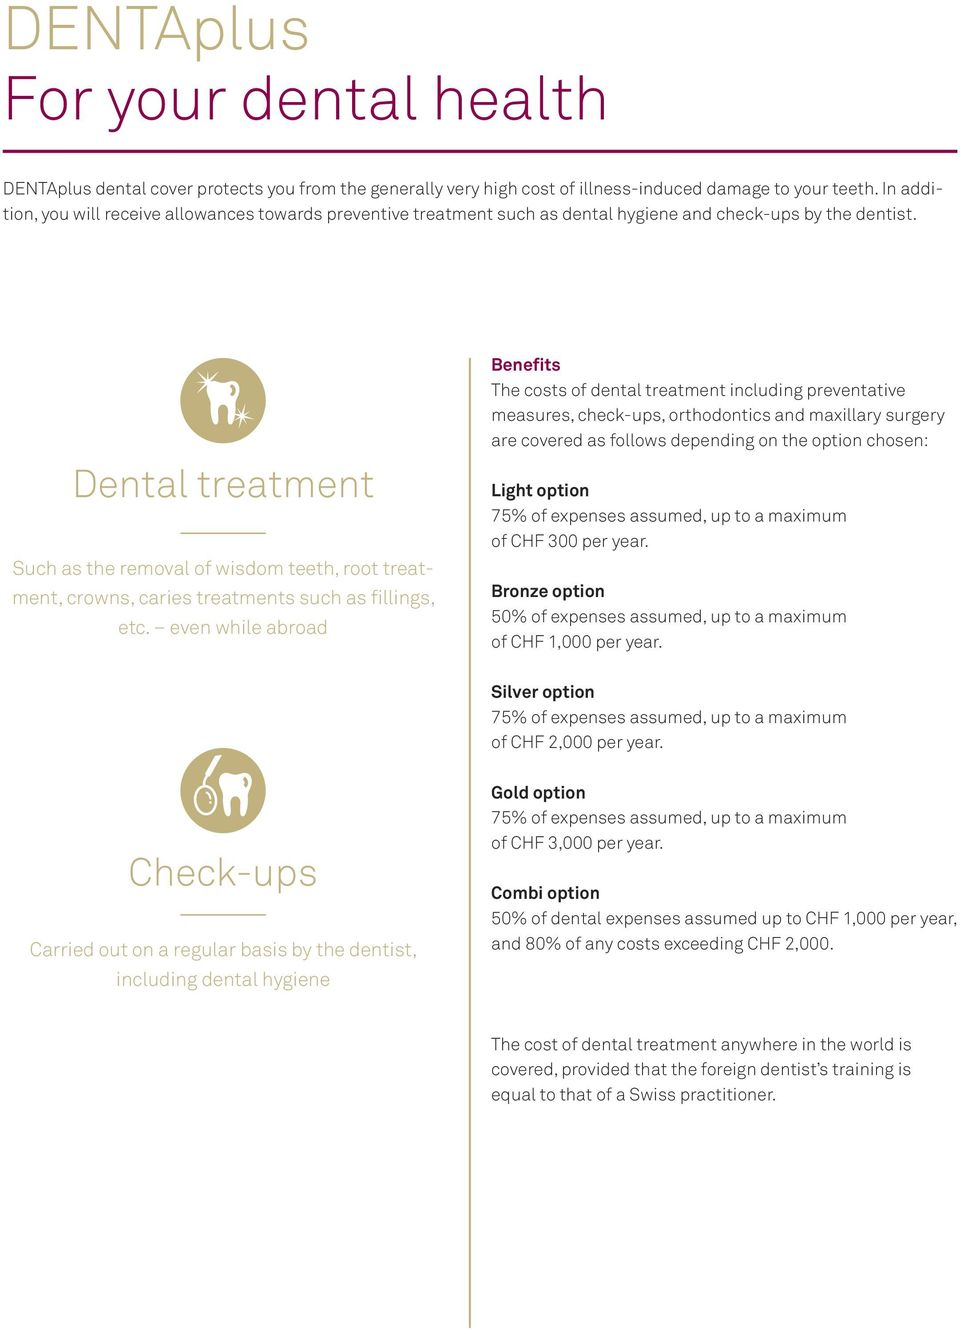 Dental treatment Such as the removal of wisdom teeth, root treatment, crowns, caries treatments such as fillings, etc.